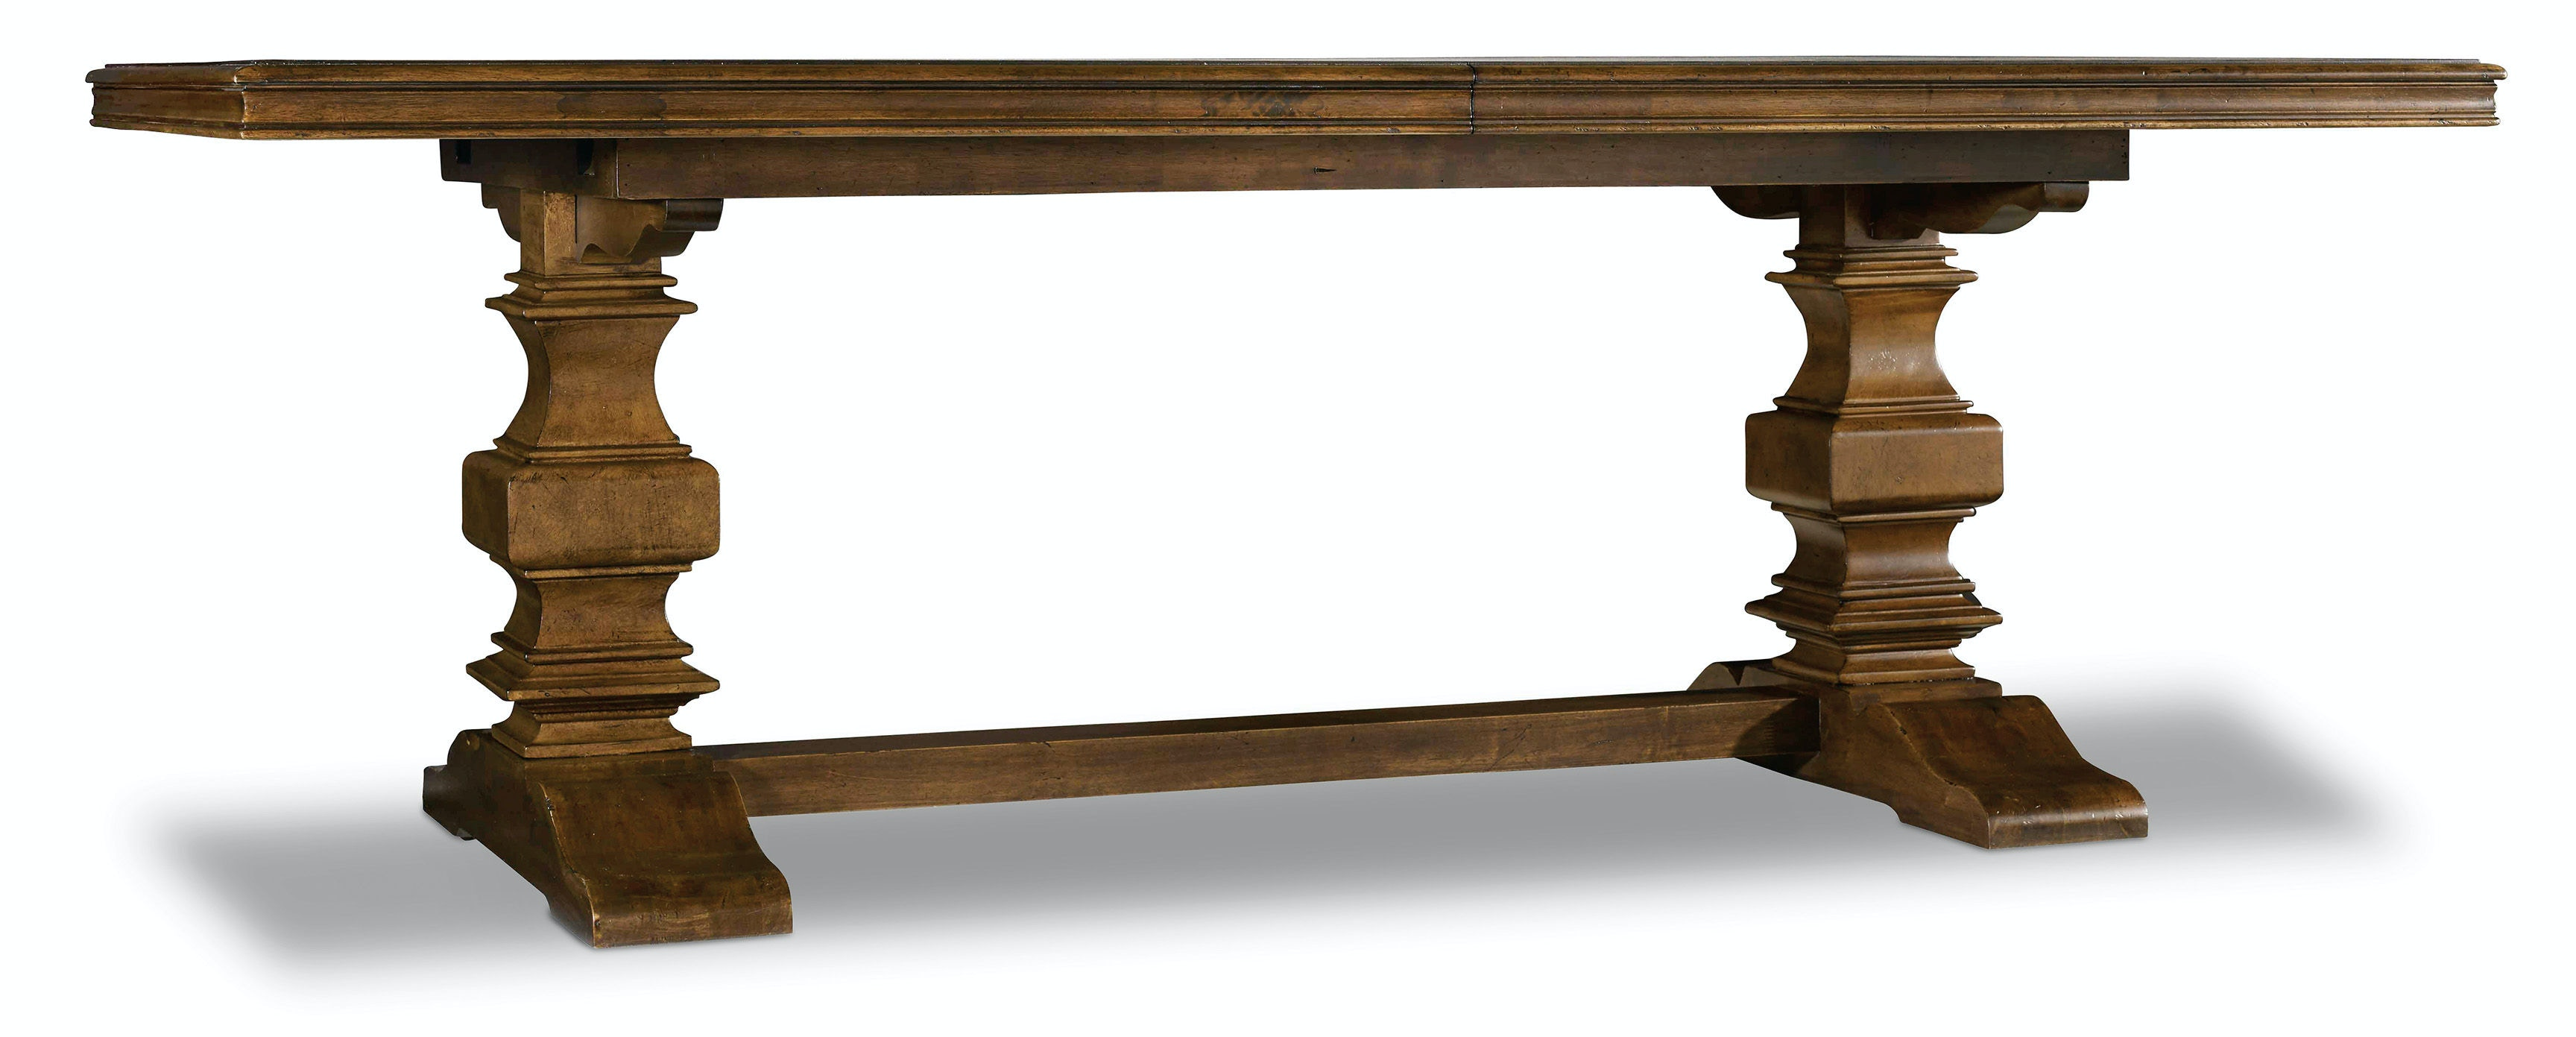 100 Larkspur Dining Table July 2017 Archives Page 2  : 5447 75206 silo from lakemurrayhome.com size 3456 x 1391 jpeg 224kB